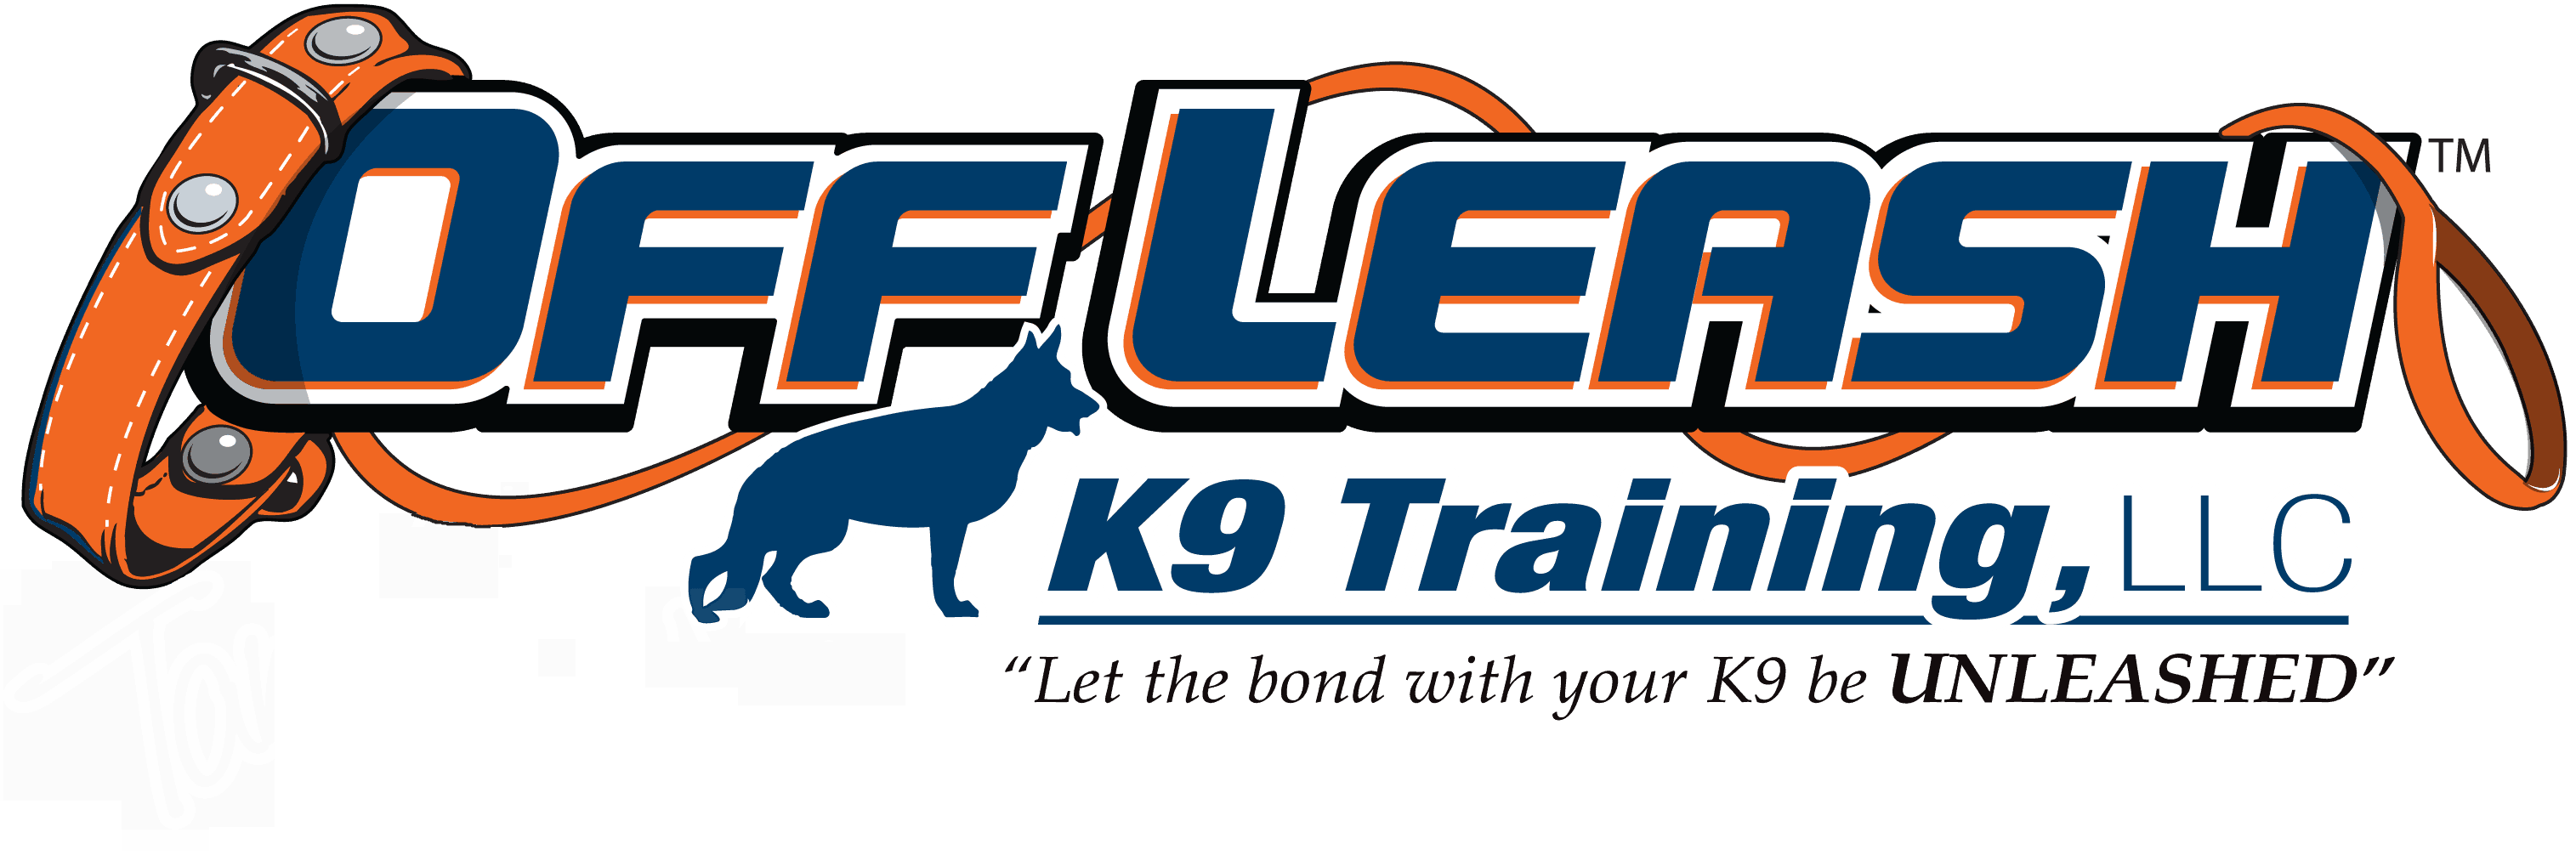 Offleash K9 Dog Training